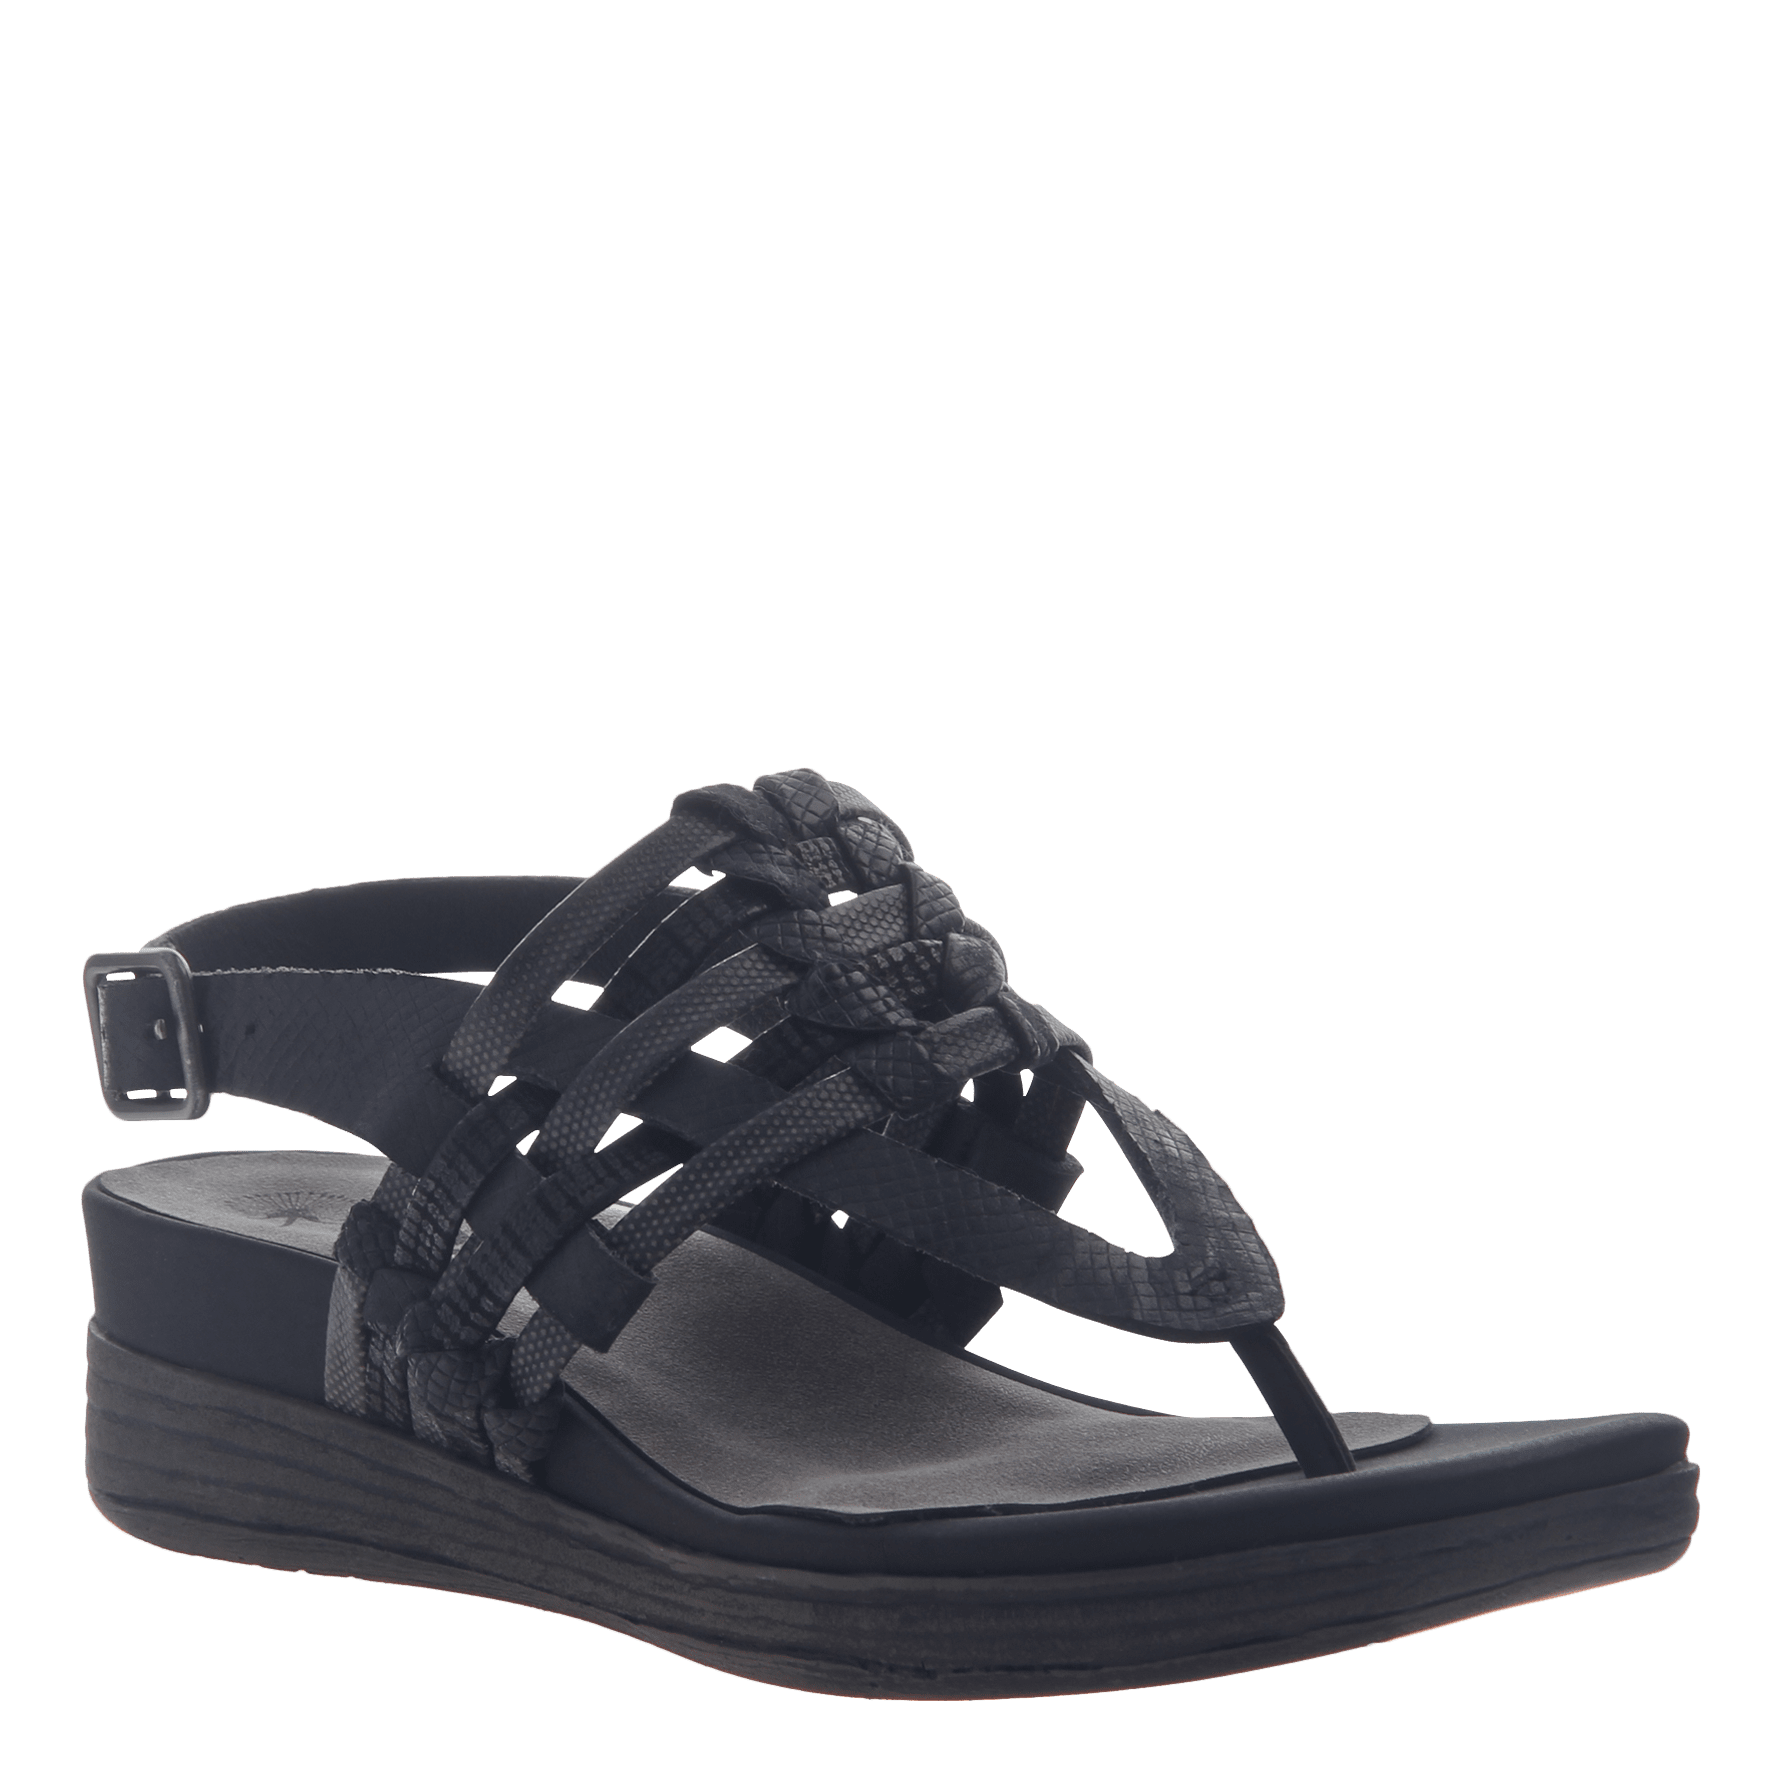 587065ad5375f Aviate in Black Wedge Sandals | Women's Shoes by OTBT